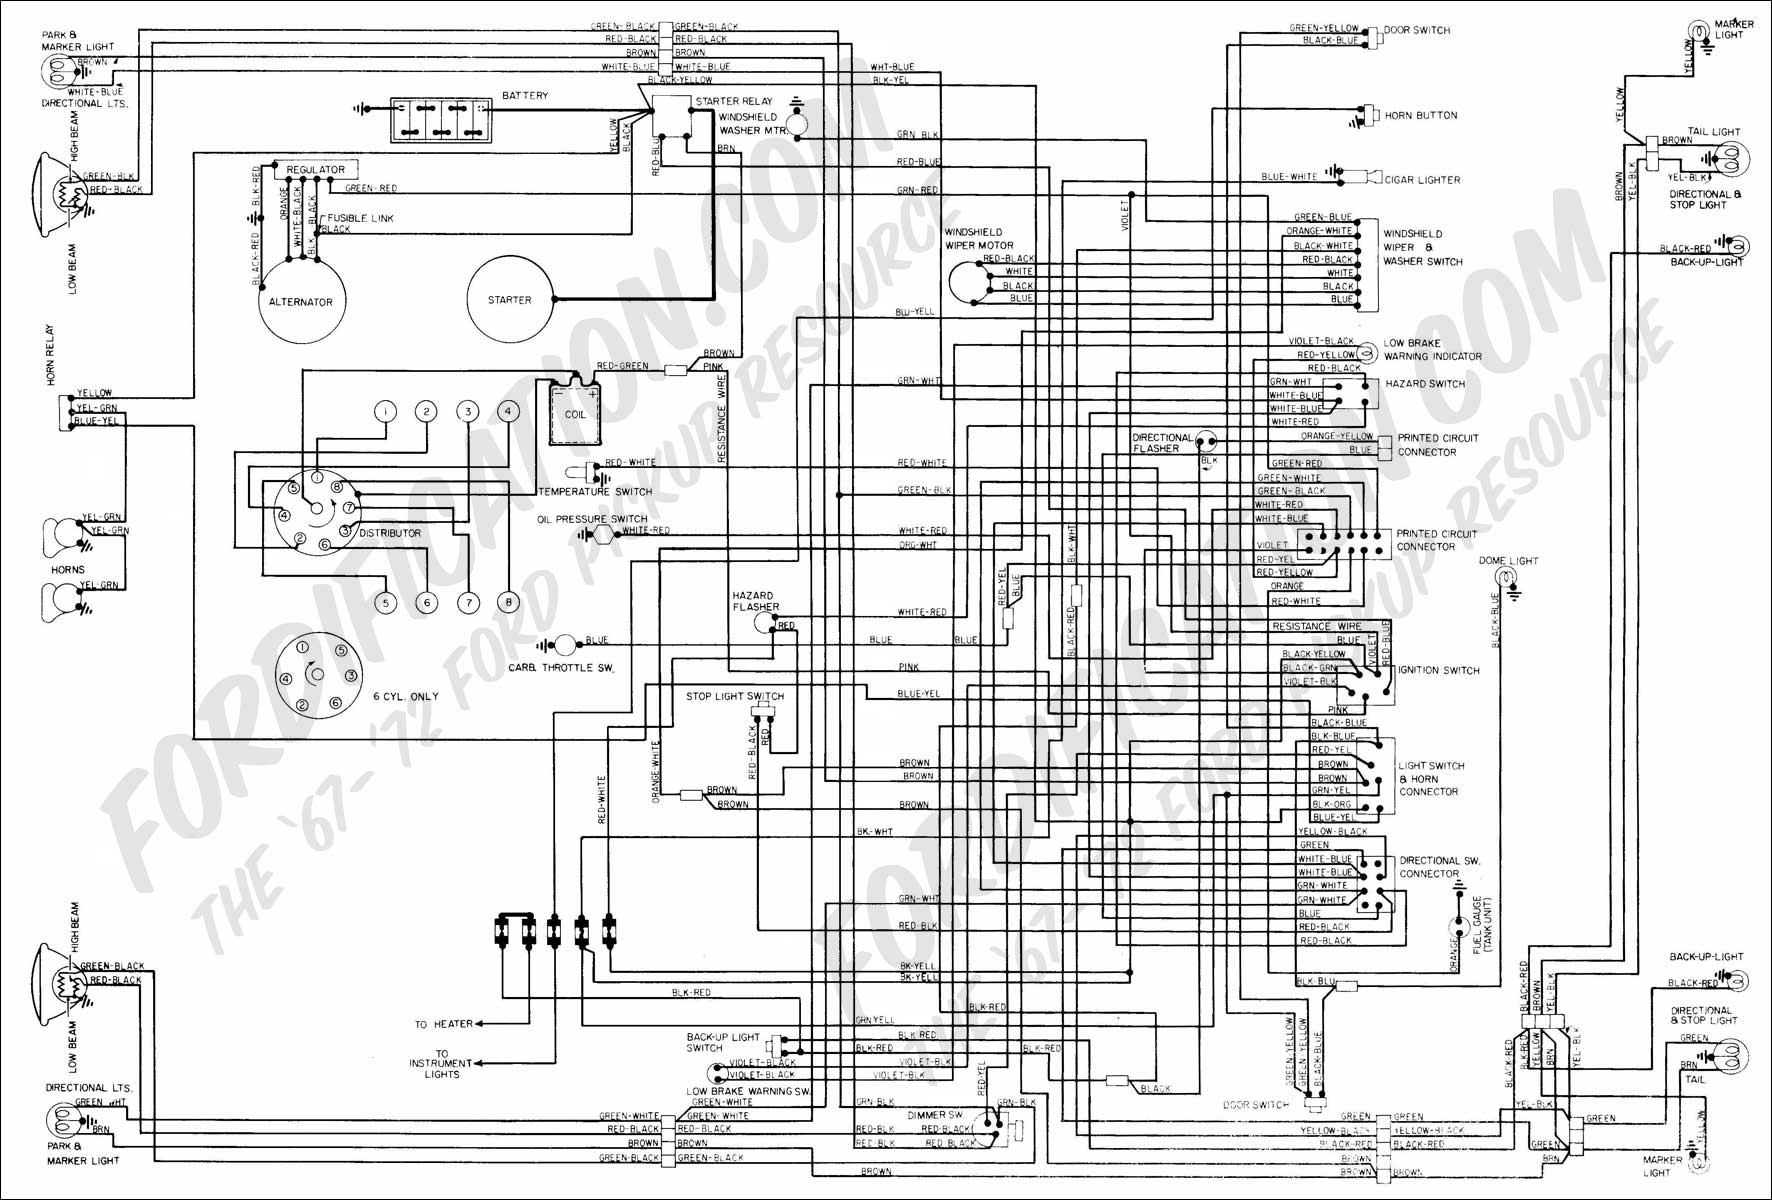 ford truck technical drawings and schematics - section h ... 1991 ford f250 wiring diagram 1955 ford f250 wiring diagram